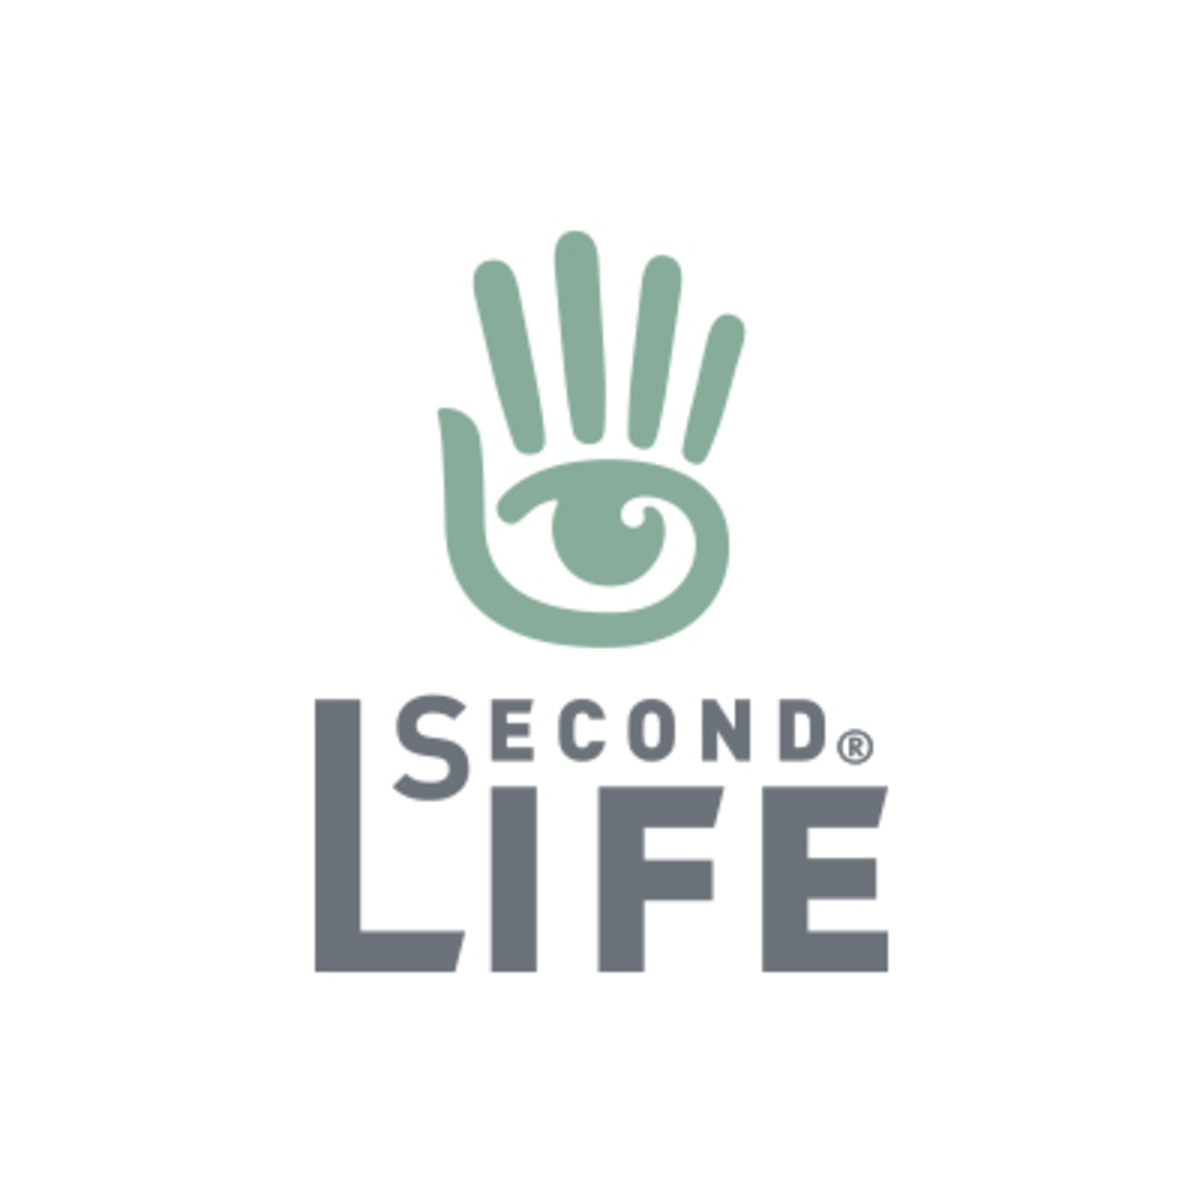 Second Life: What You Need to Know Before Getting Started